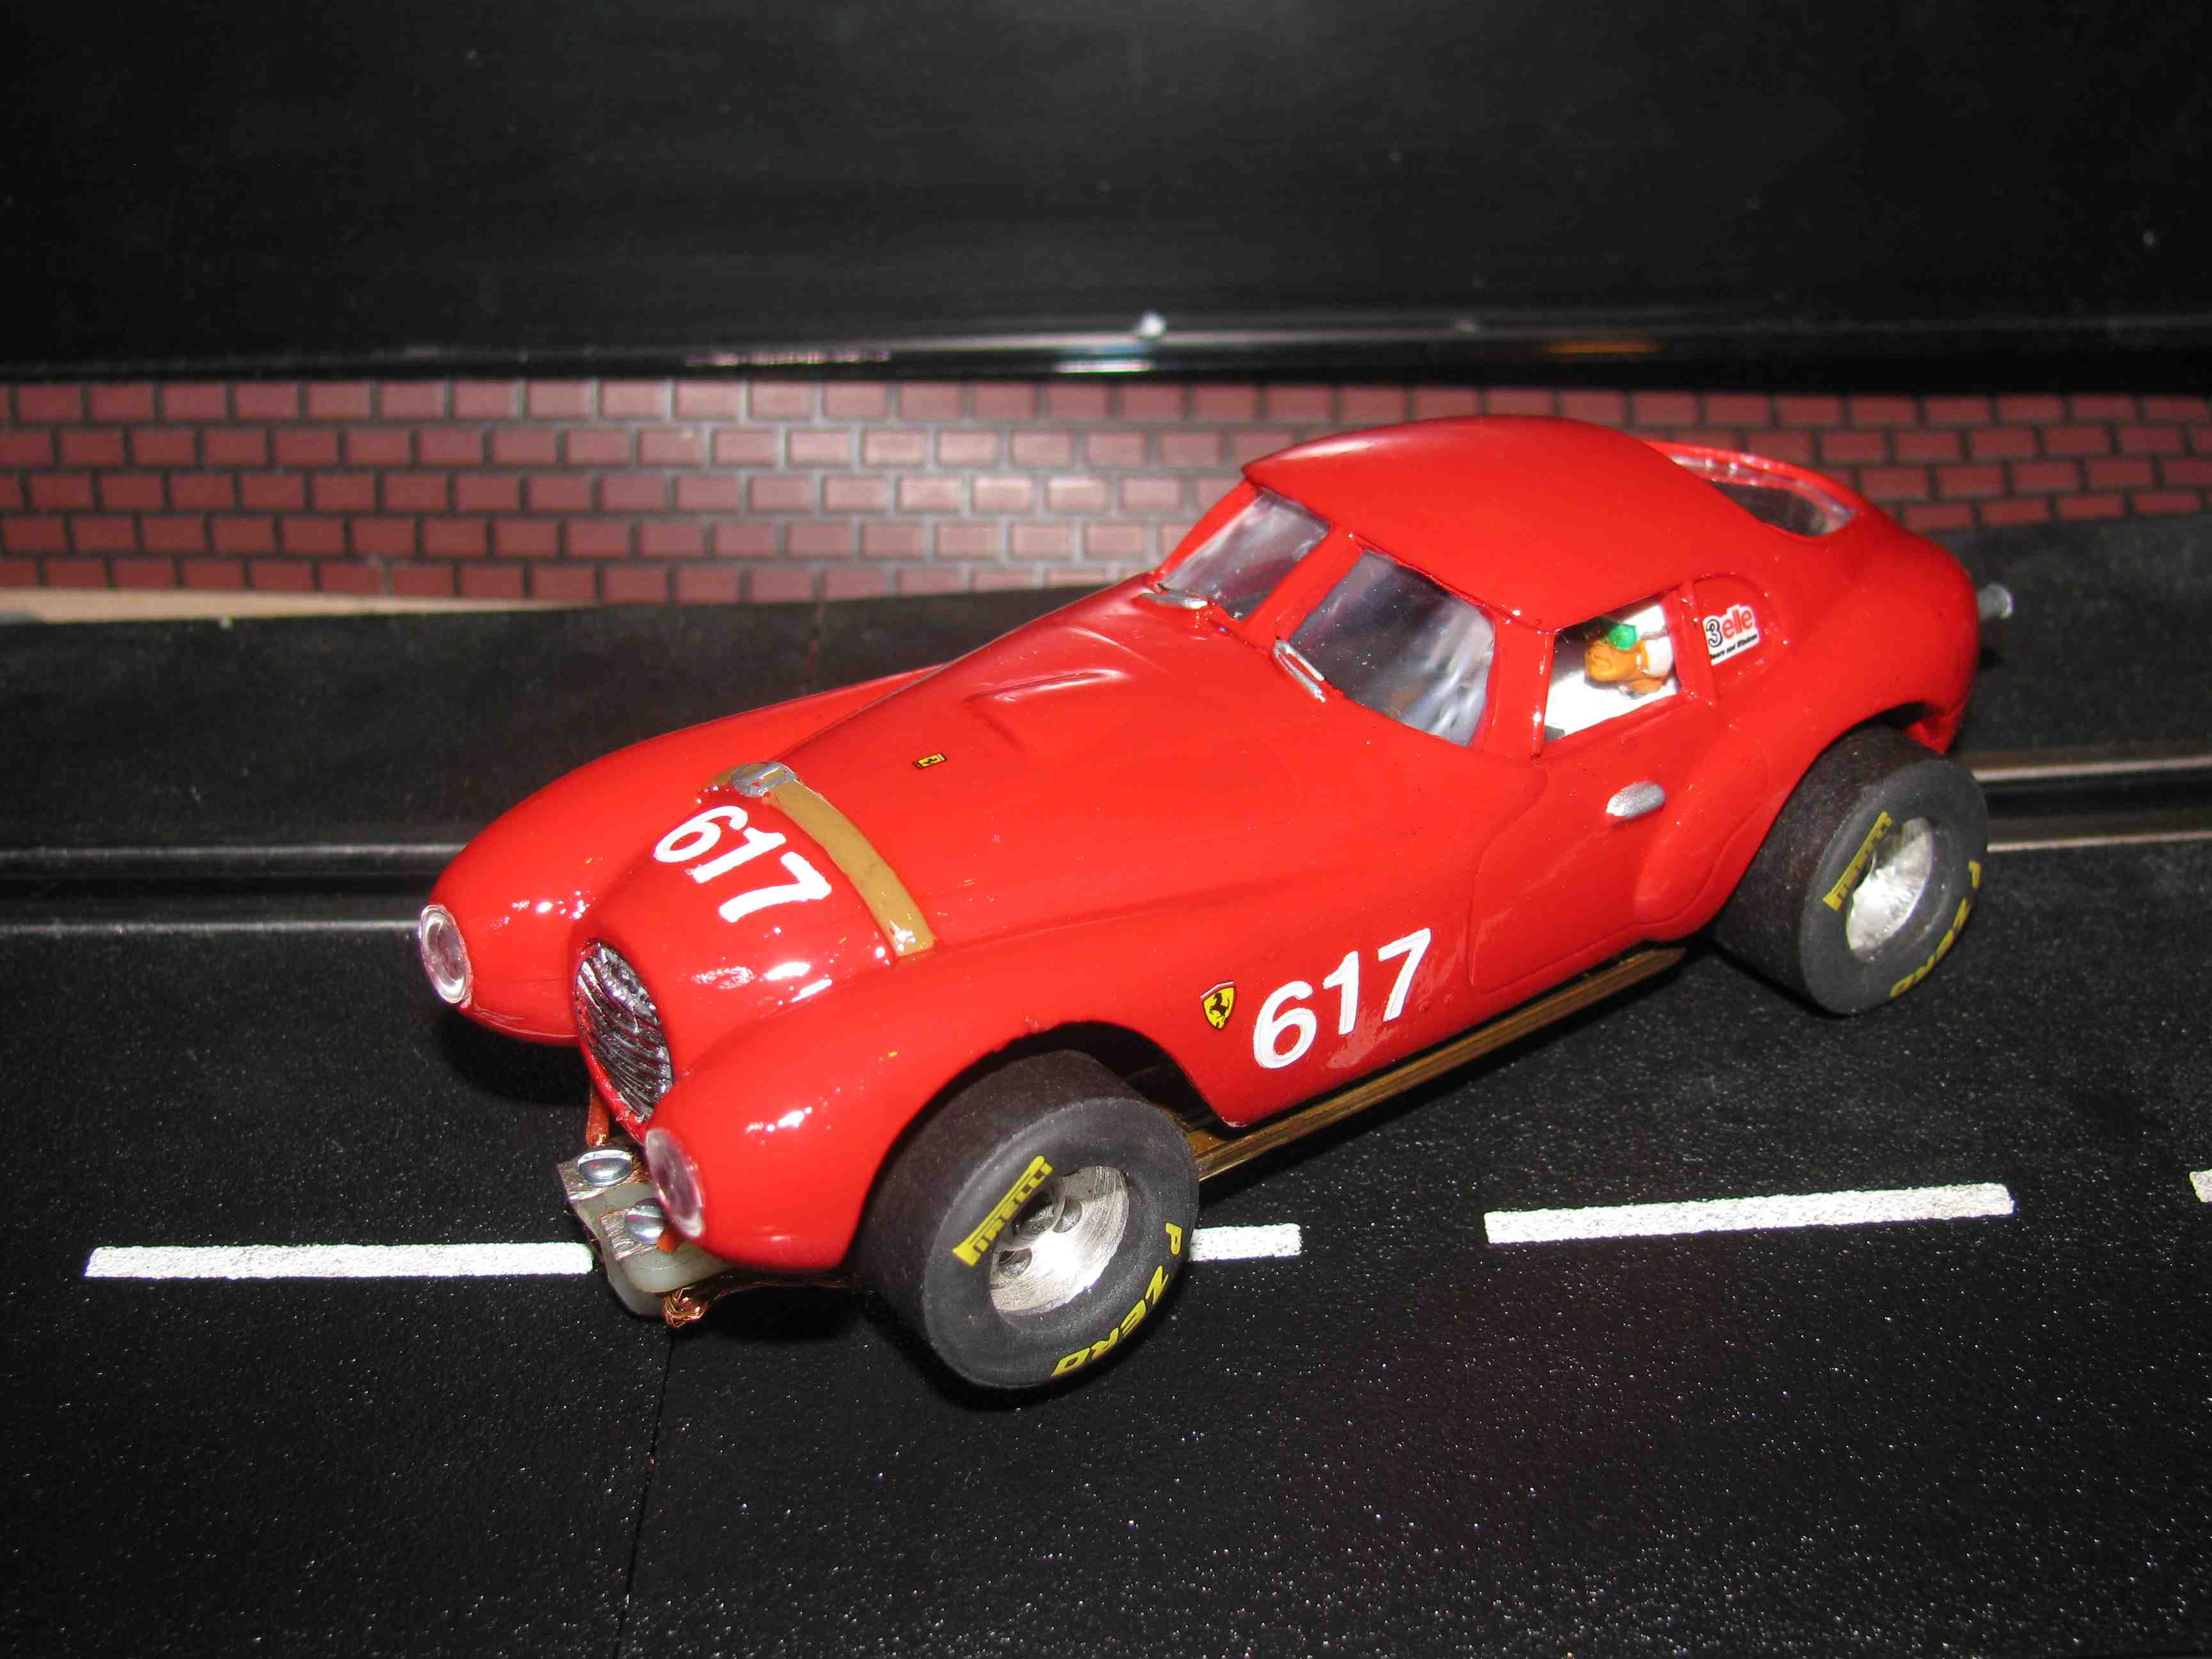 * SOLD * Rare 1950 Ferrari 166 MM Uovo Slot Car 1/32 Scale – Car #617 – Corsa Red